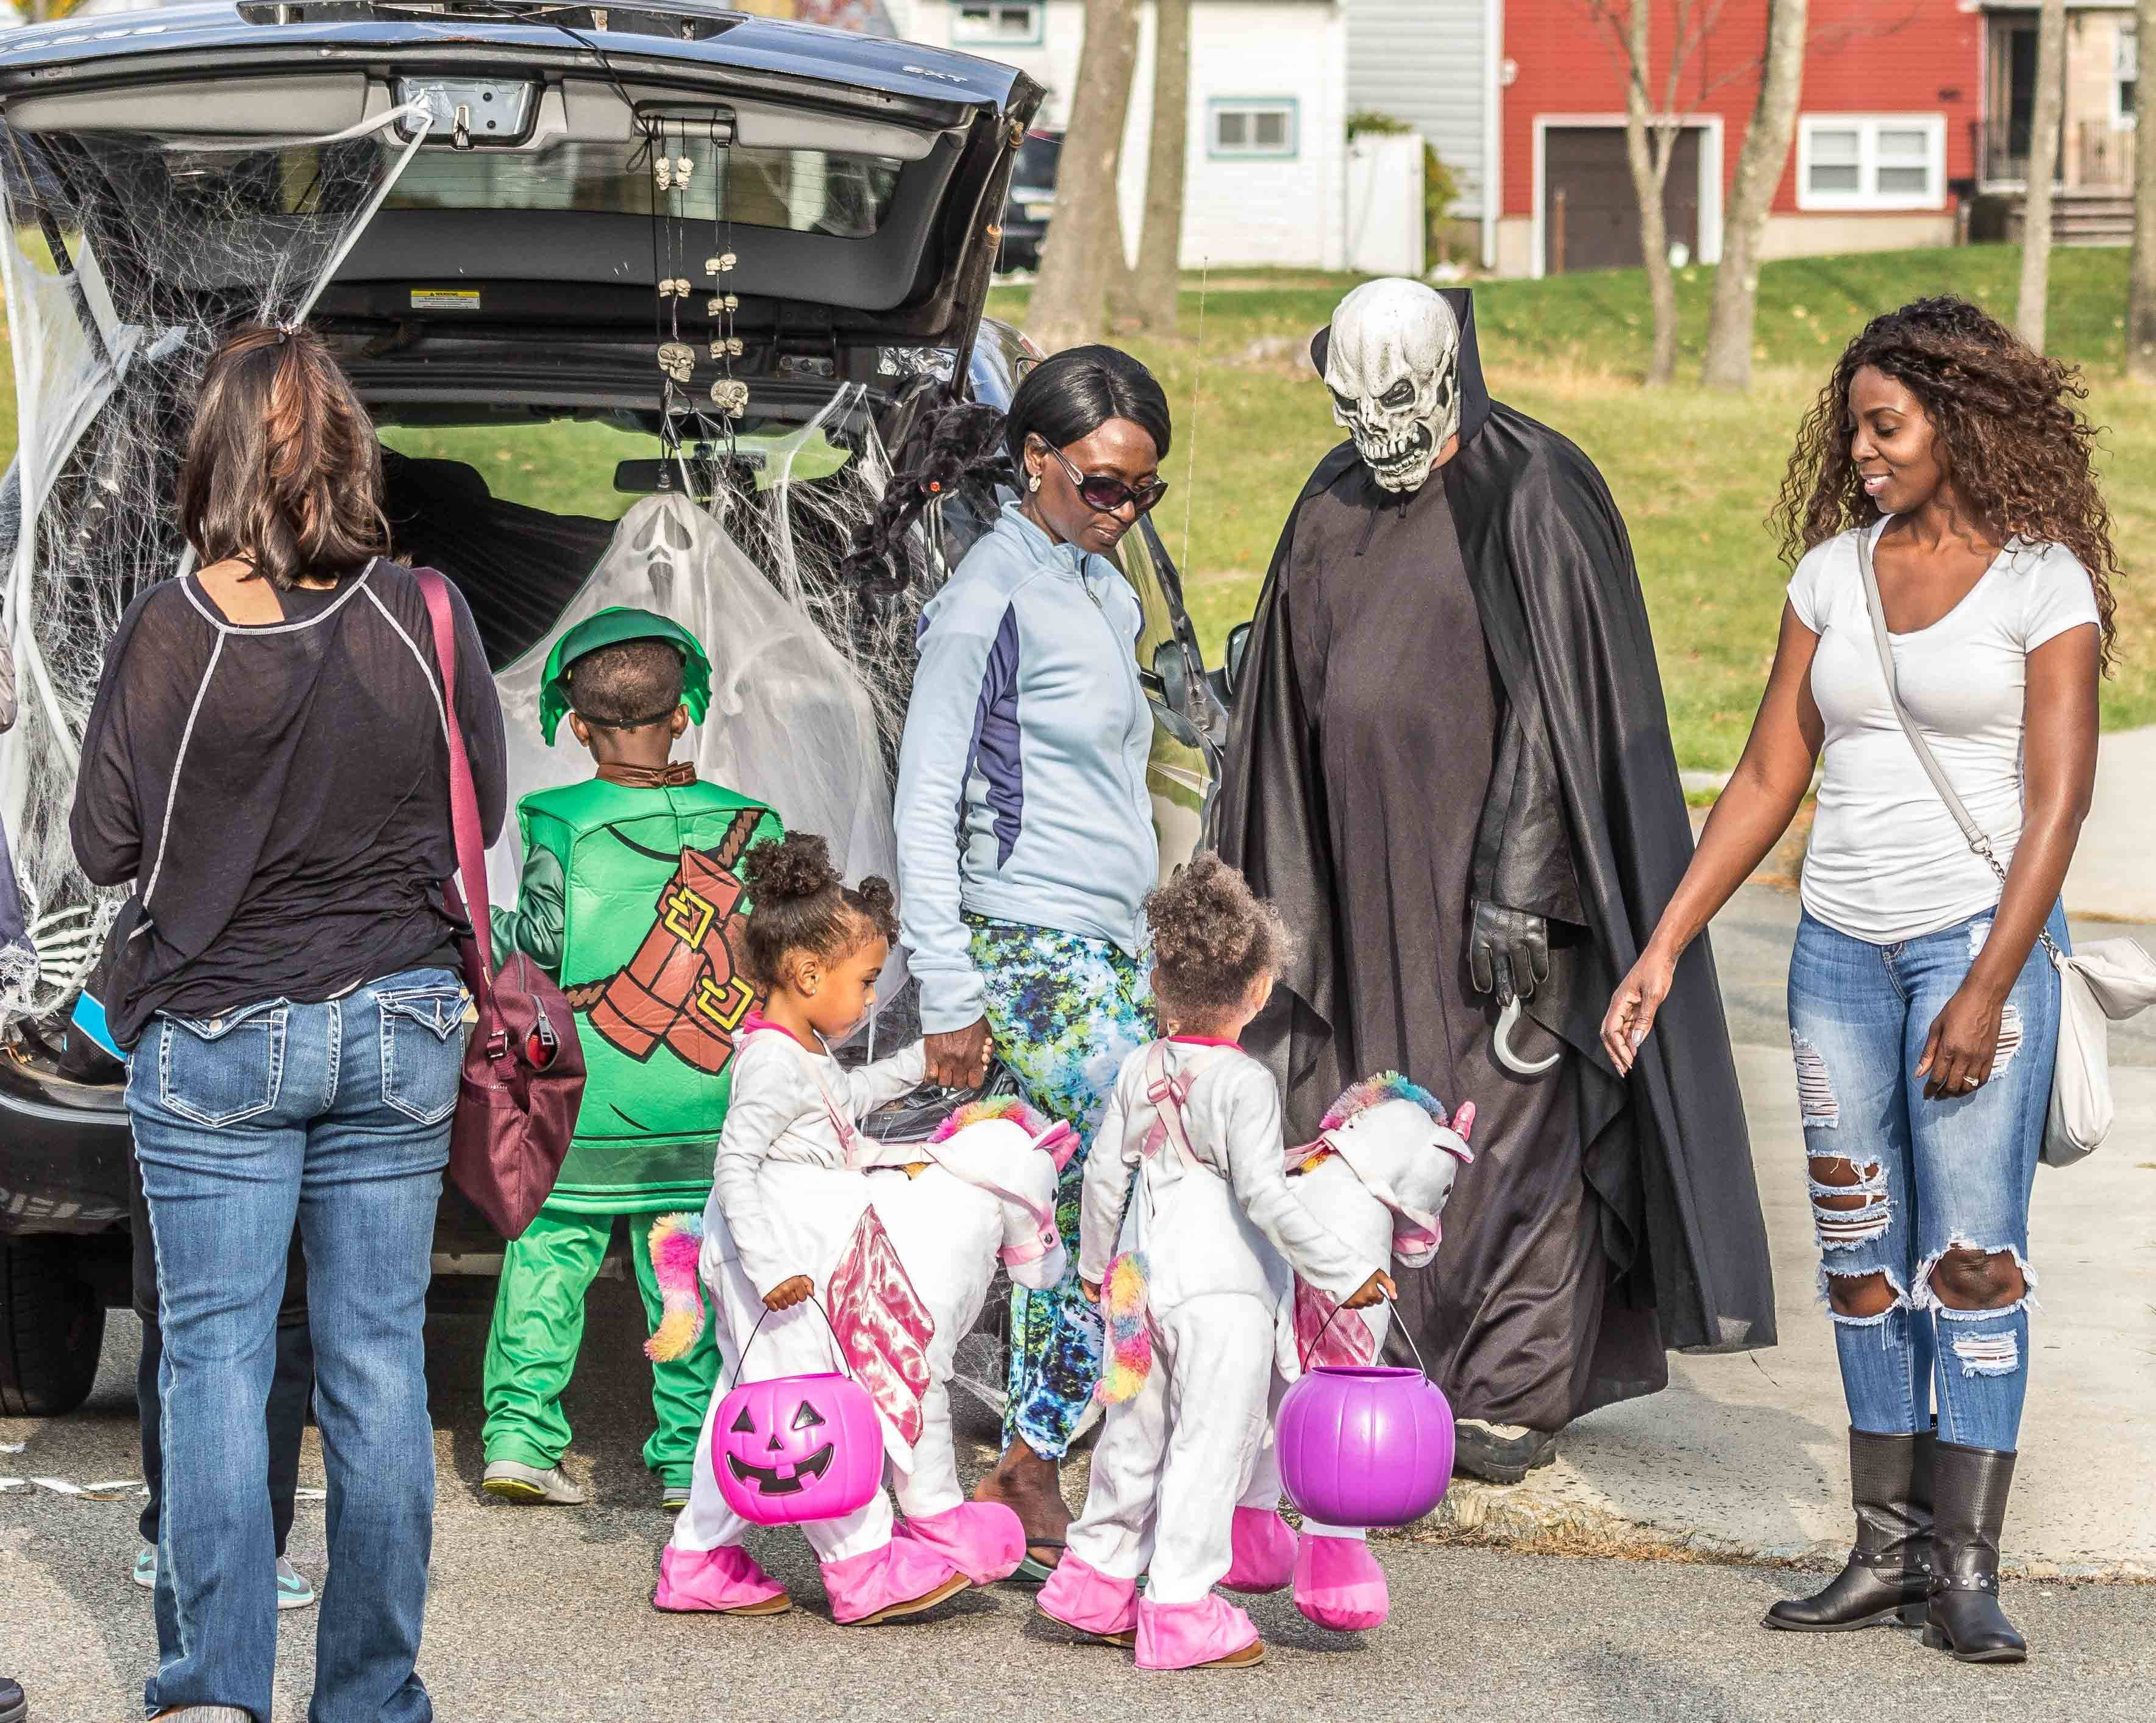 Weather Holds Out For West Orange Trunk Or Treat Halloween Event Tapinto The cambria hotel west orange hotel in west orange, nj is located near seton hall university, prudential center and the turtleback zoo. tapinto